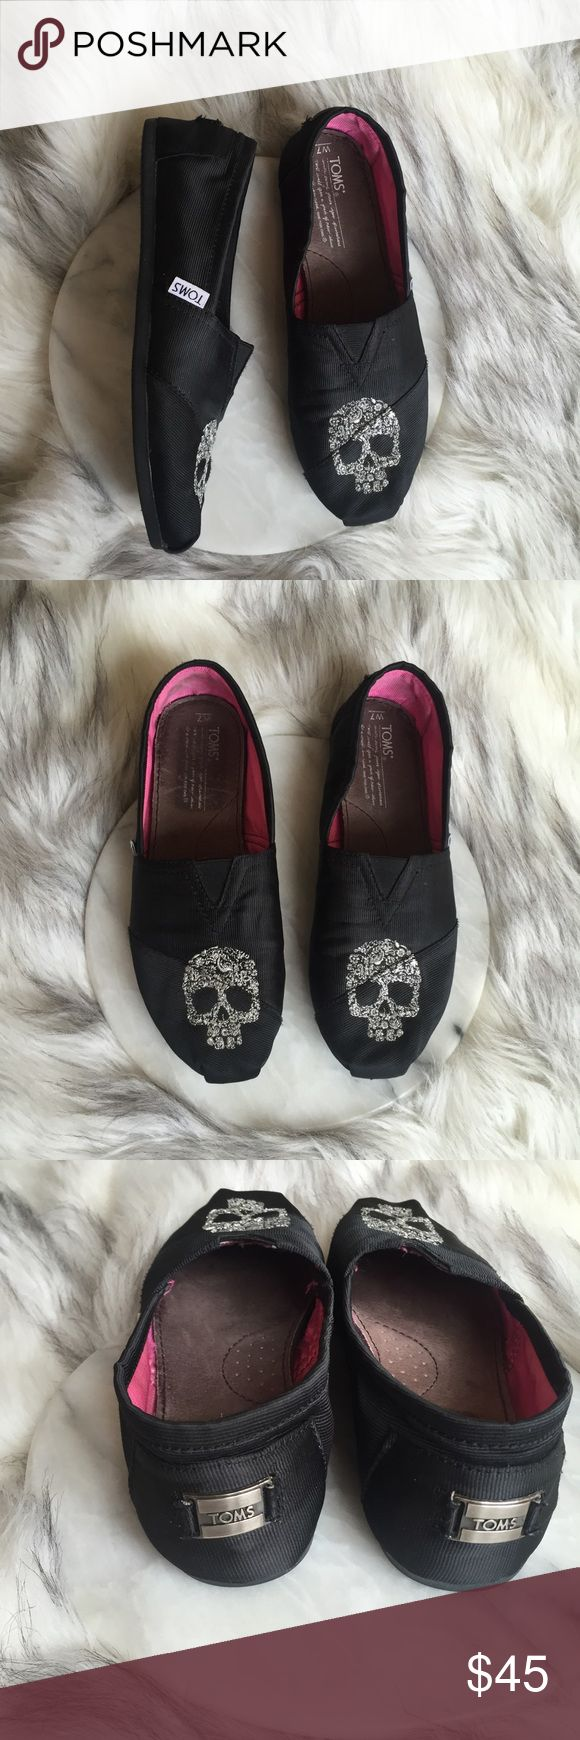 Toms shoes Toms shoes super cute.. open to offers TOMS Shoes Flats & Loafers